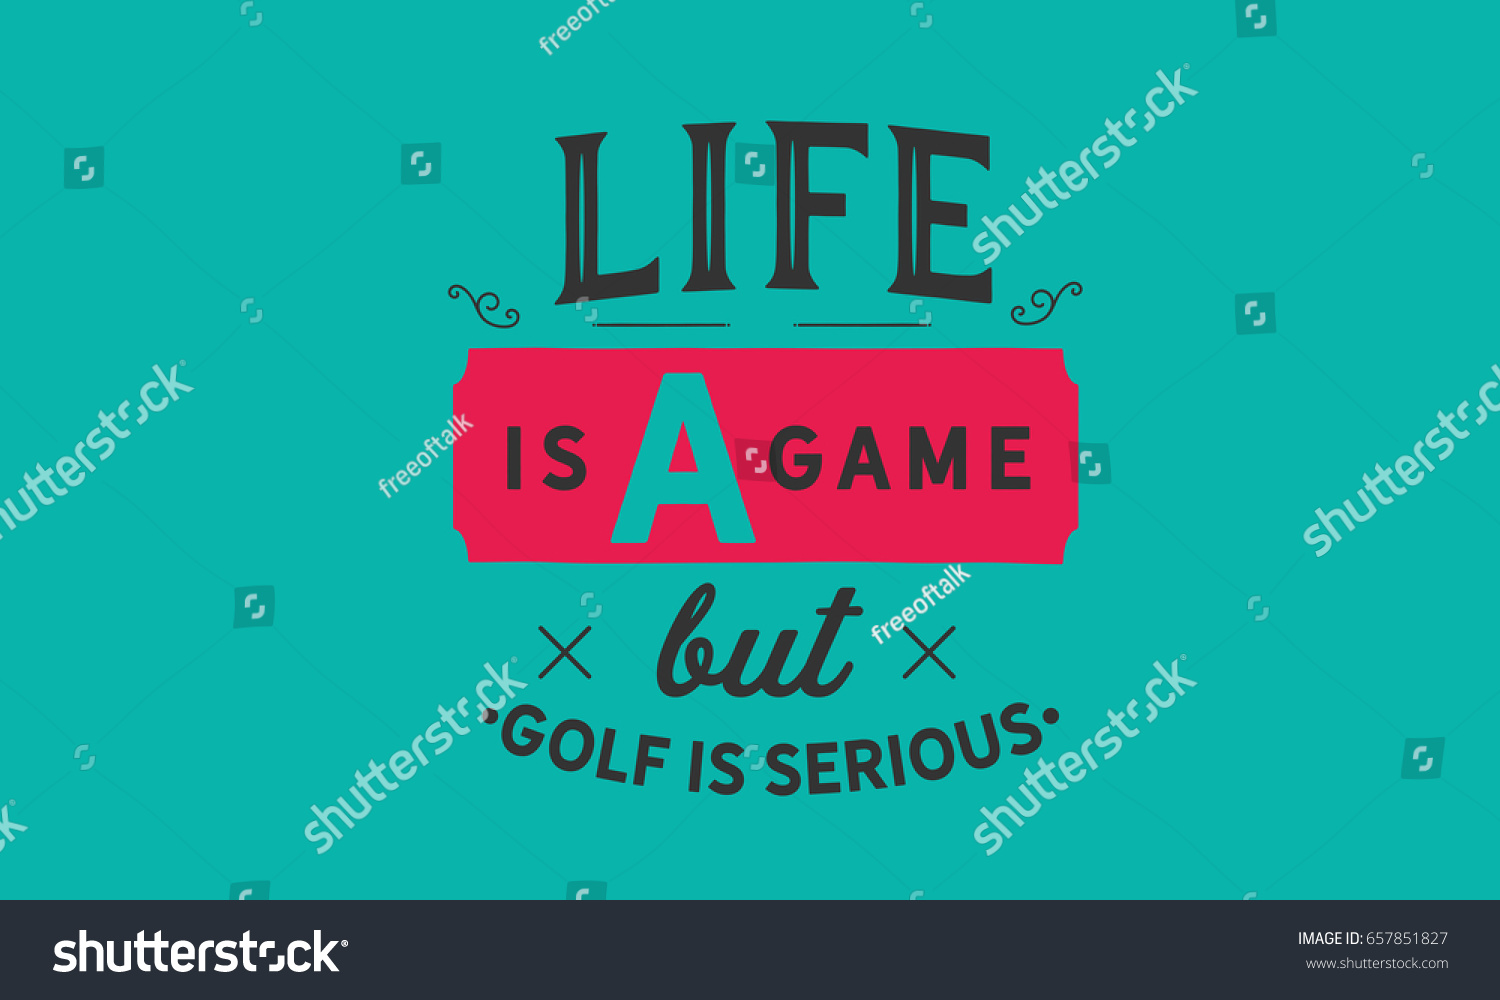 Golf Quotes About Life Life Game Golf Serious Golf Quotes Stock Vector 657851827